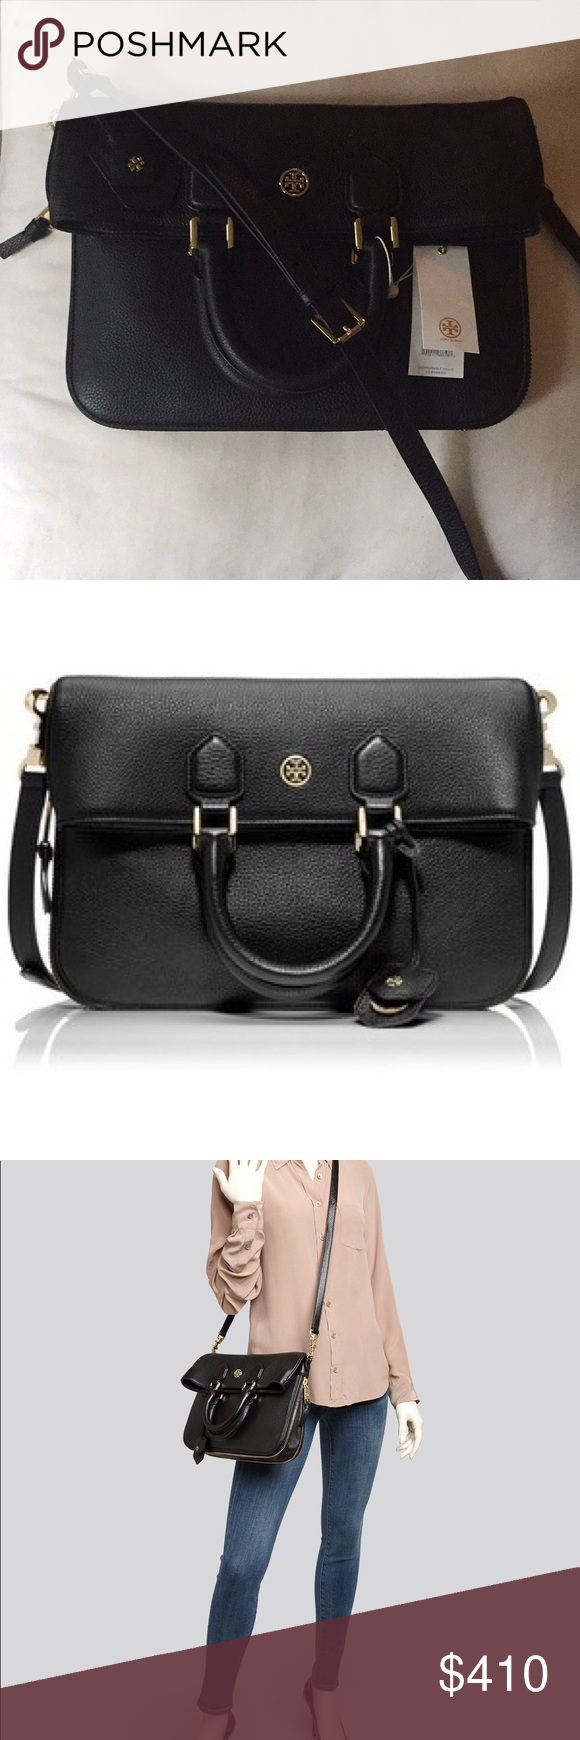 9442a229875 Tory Burch Robinson Pebbled Fold Over Messenger Sold out everywhere! Brand  new with tags!